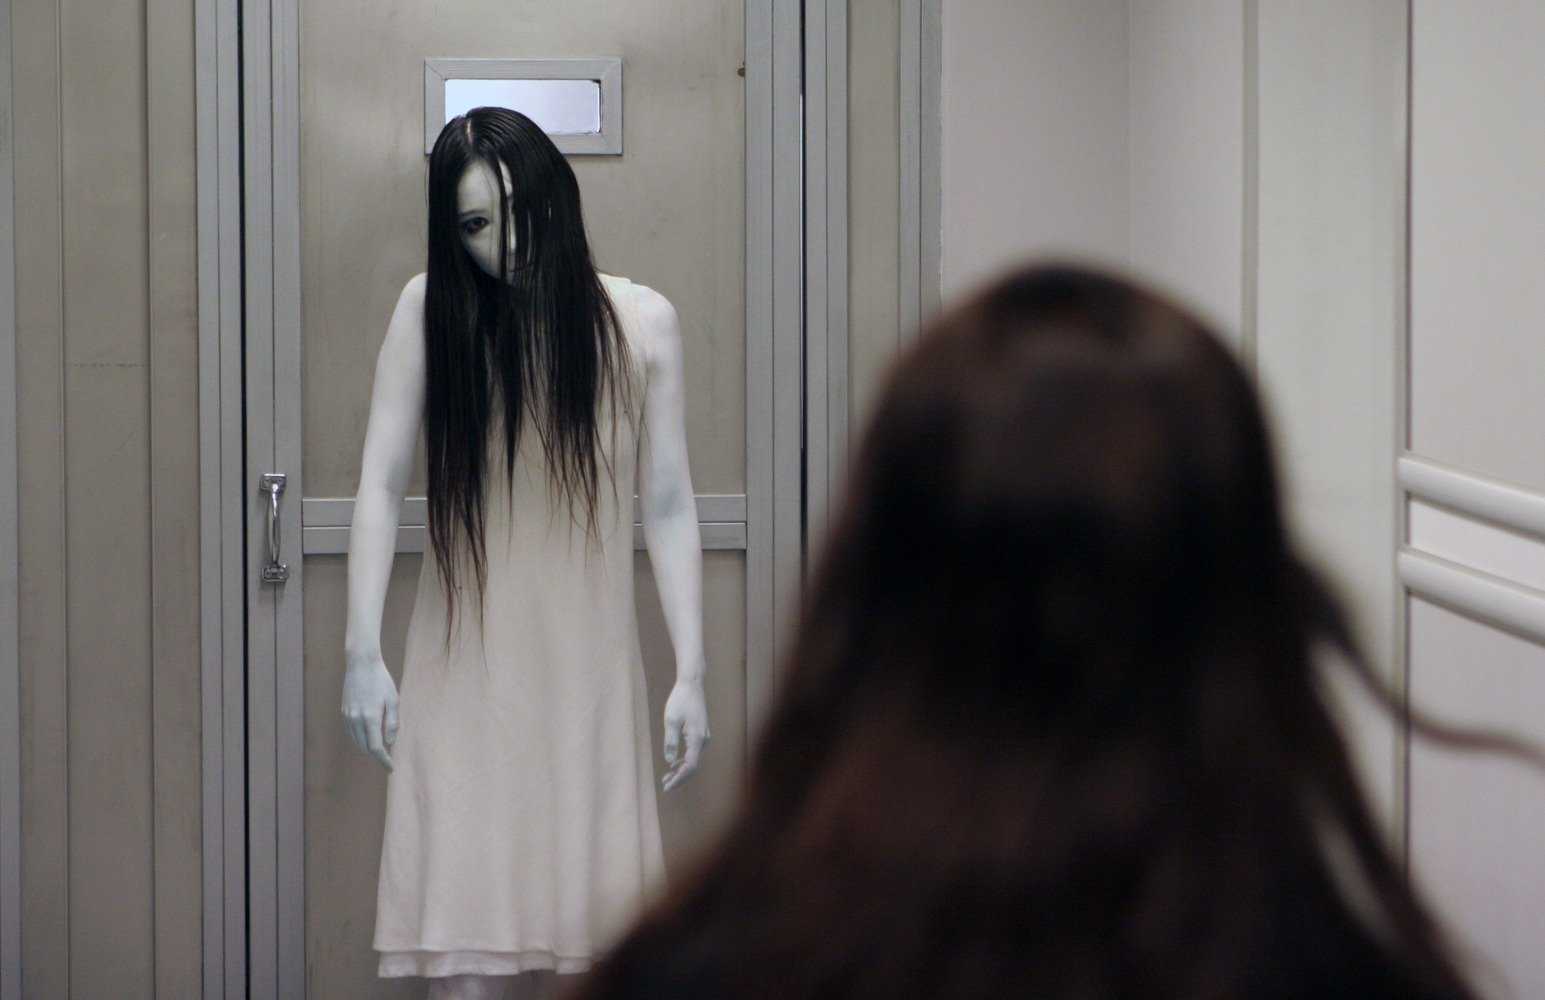 The Grudge Movie Wallpapers | HD Wallpapers | Pinterest | Movie ...